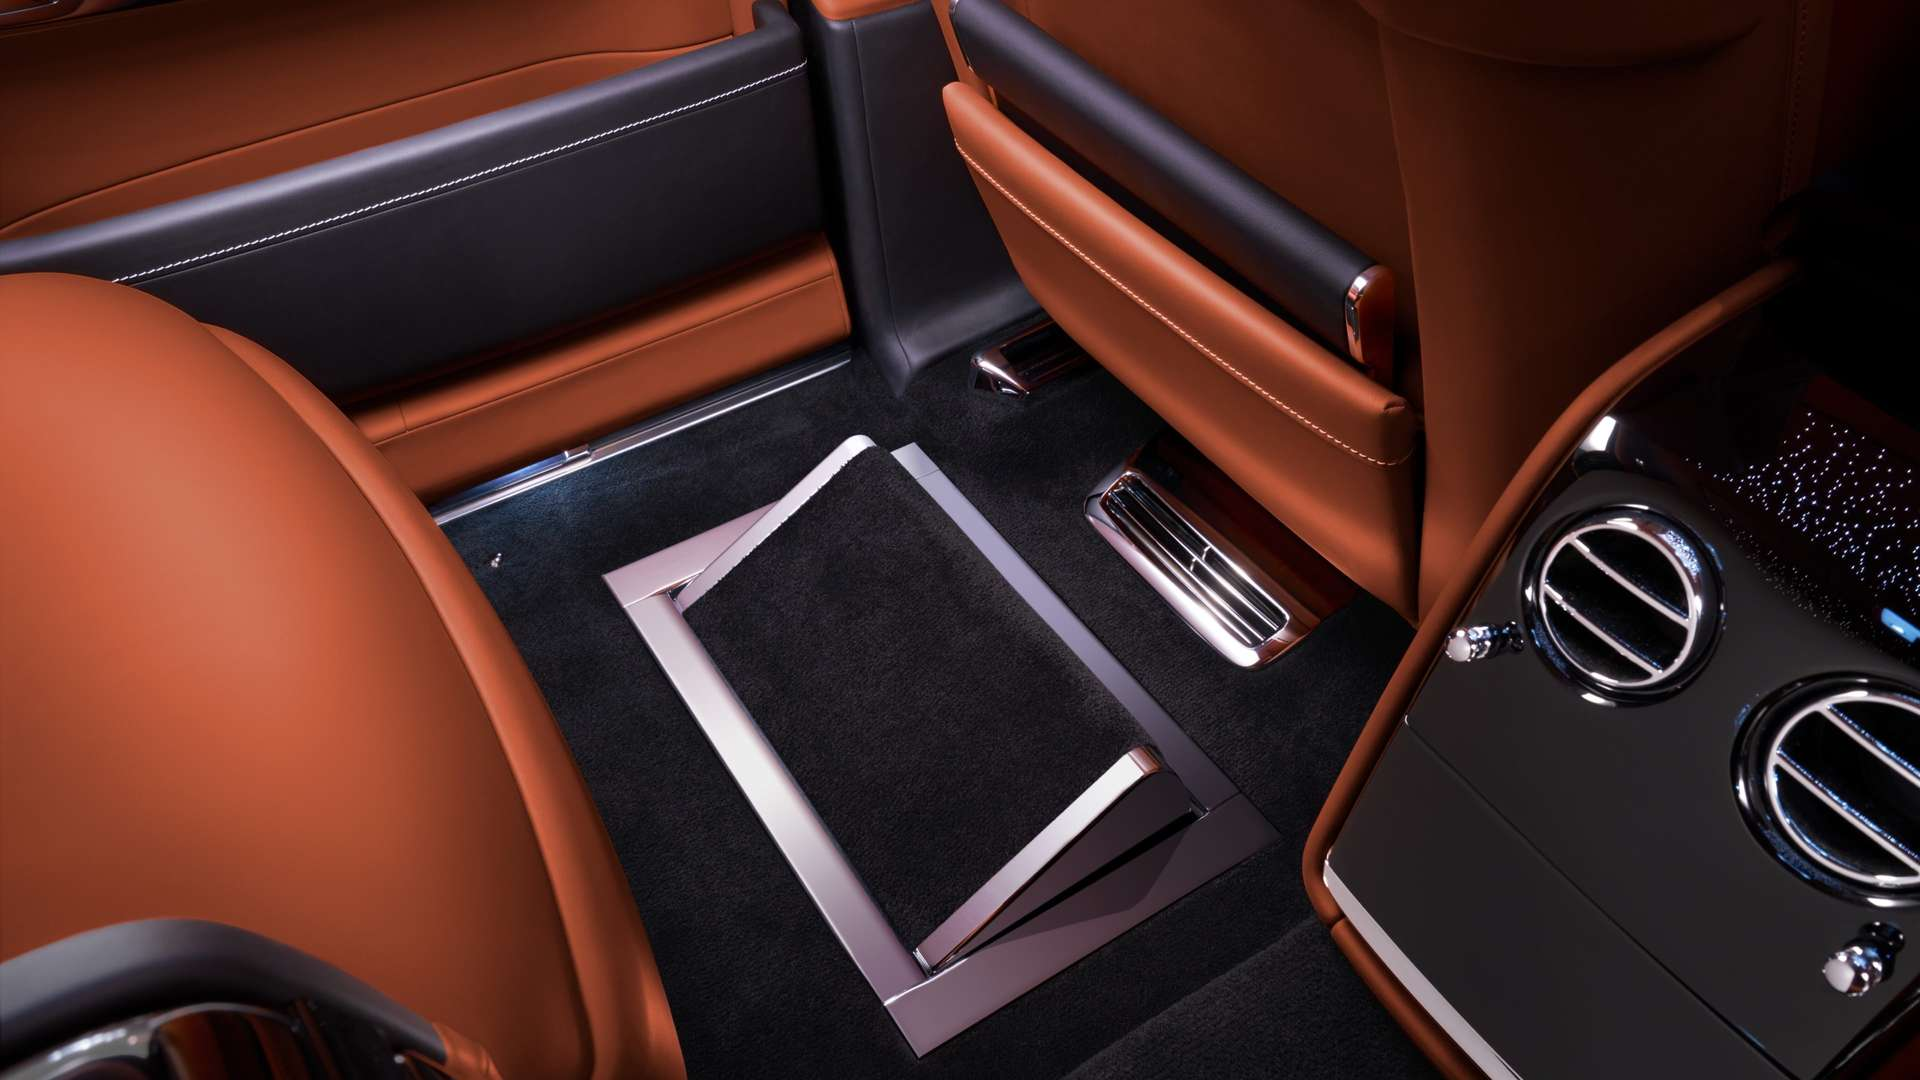 The footrest found in the rear of a Rolls-Royce Phantom.